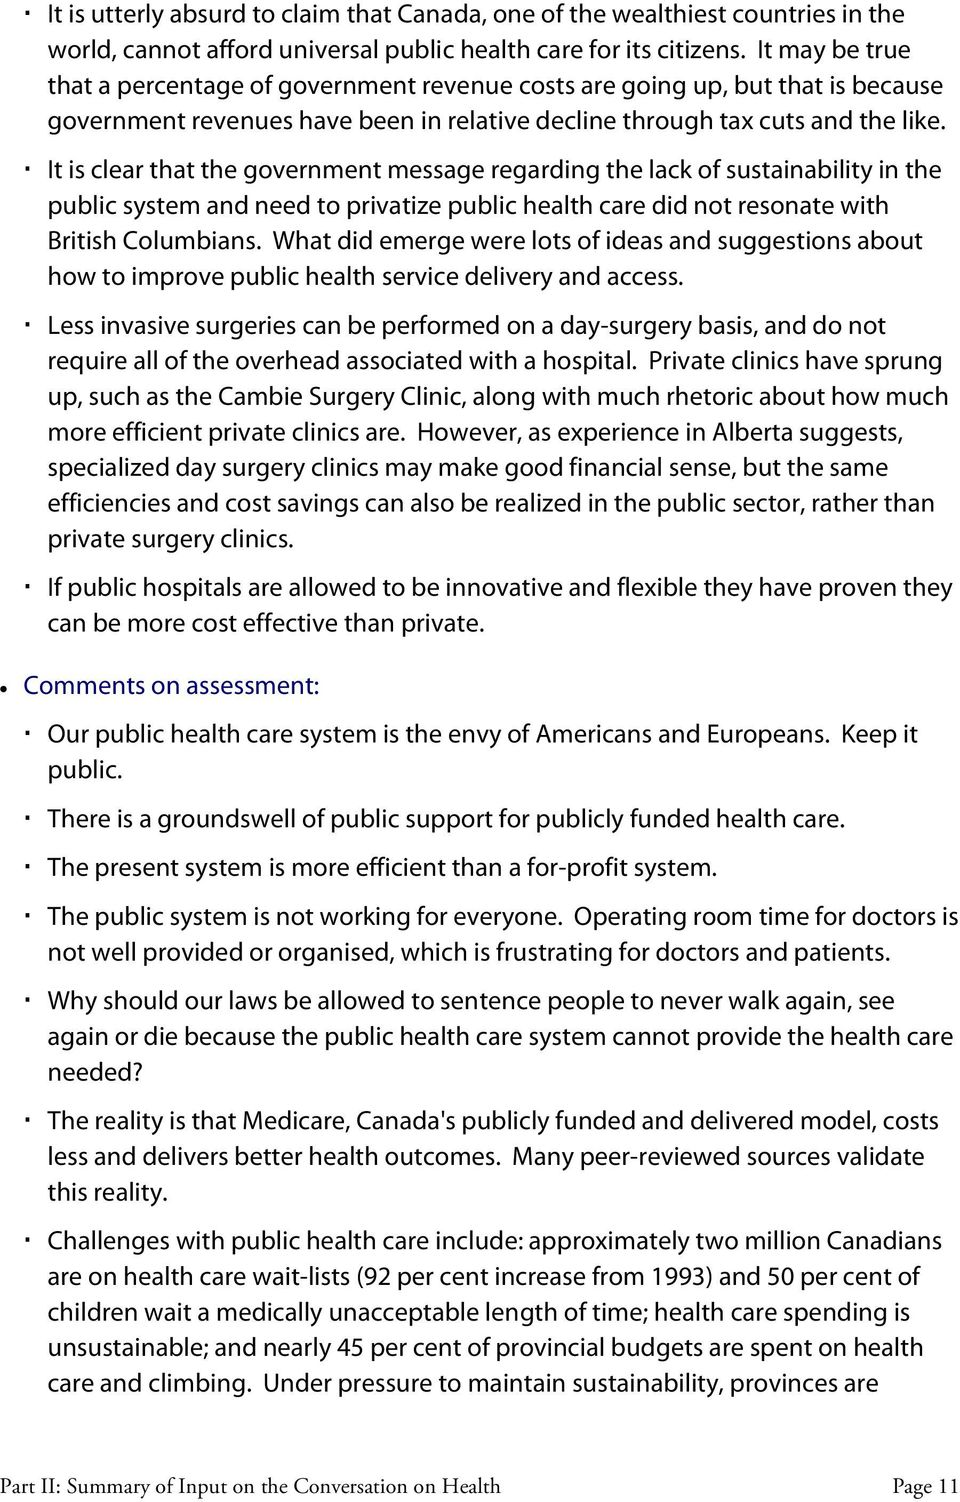 It is clear that the government message regarding the lack of sustainability in the public system and need to privatize public health care did not resonate with British Columbians.